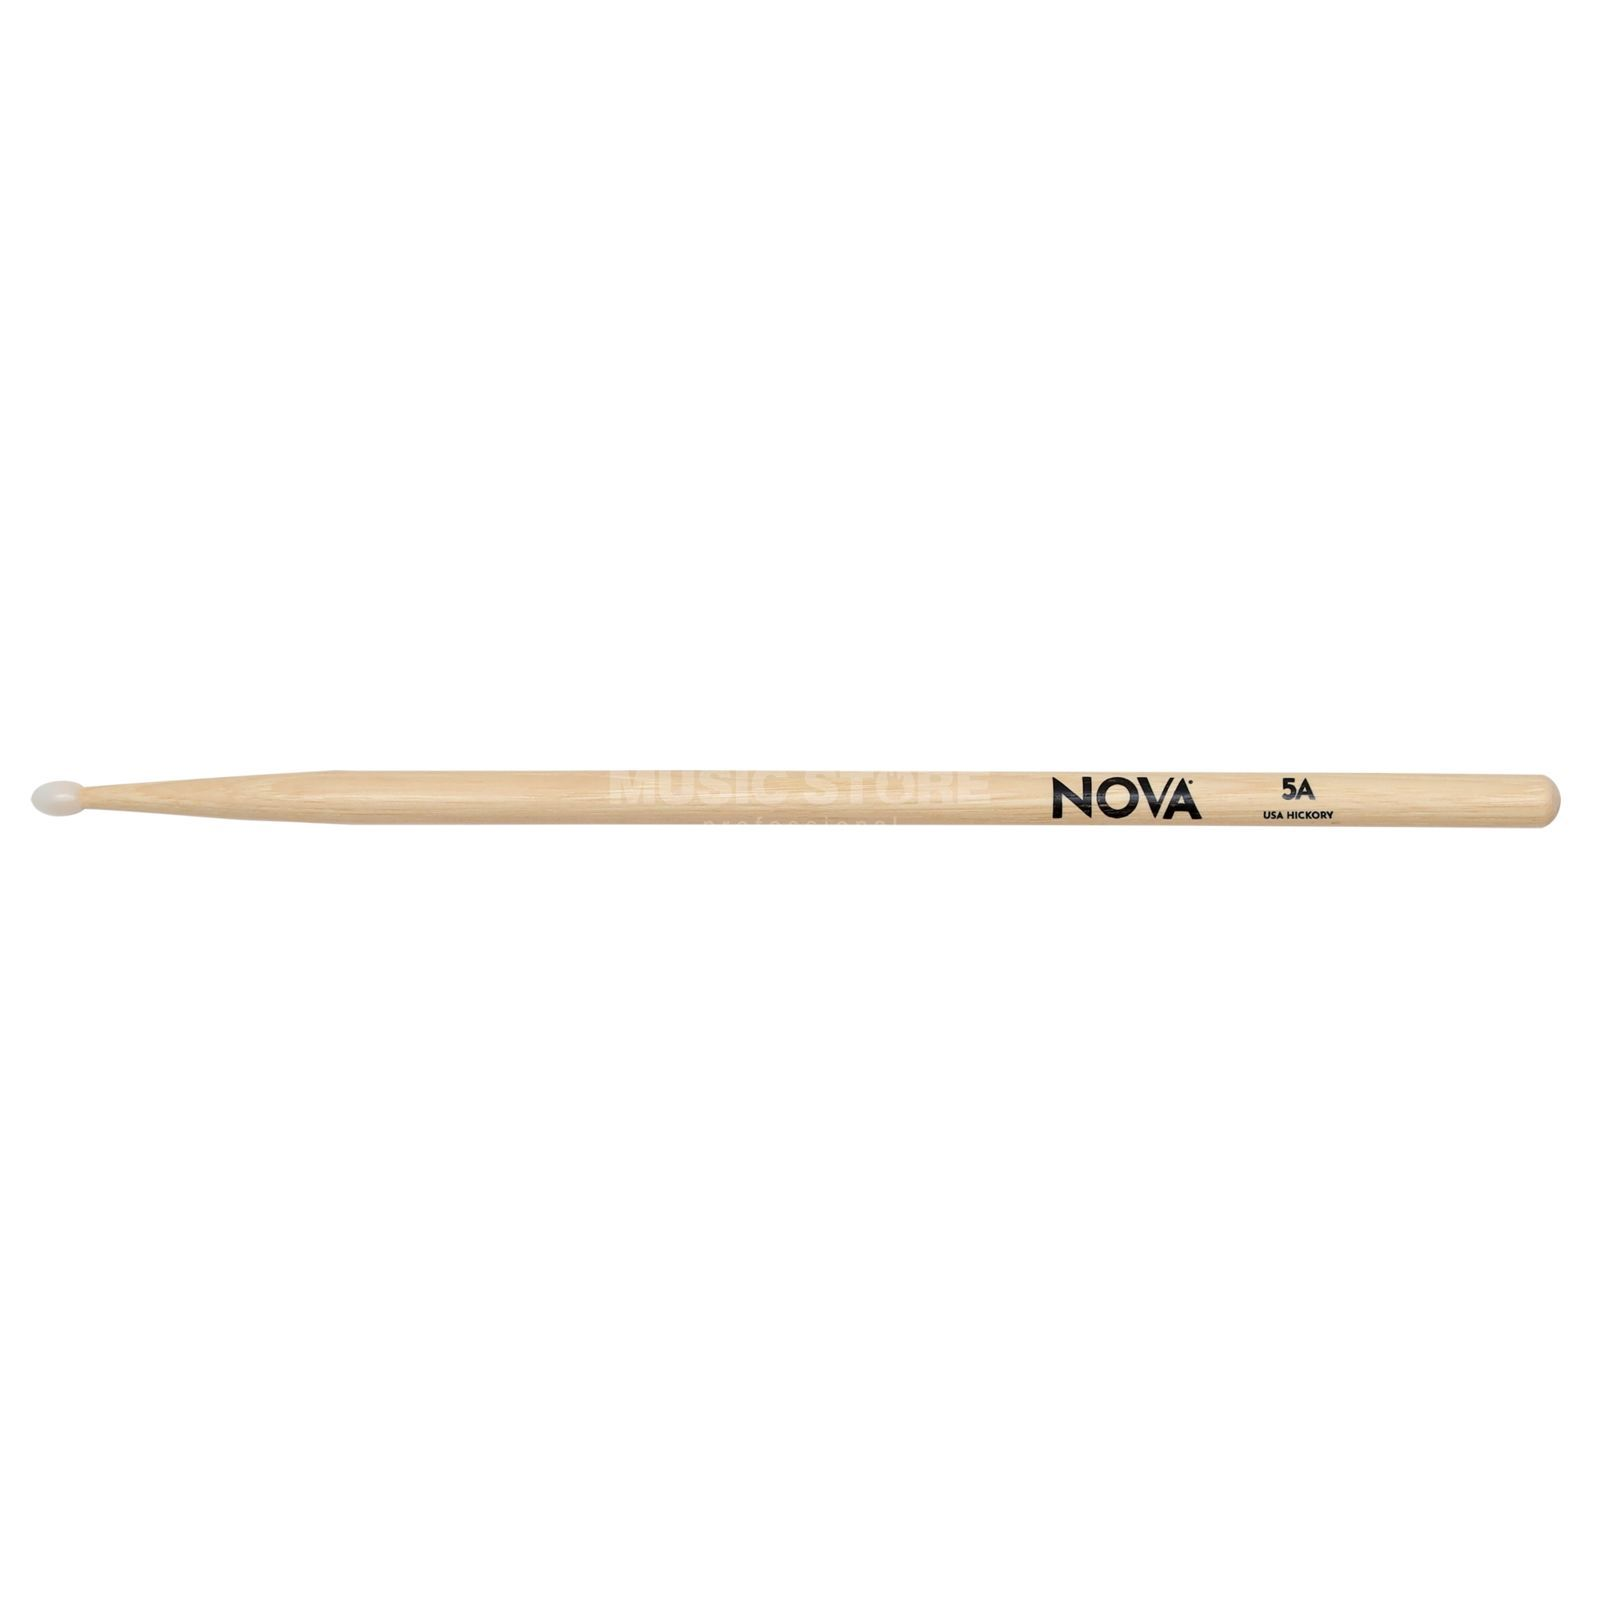 Vic-Firth Nova Drum Sticks 5AN, Nylon Tip Produktbillede